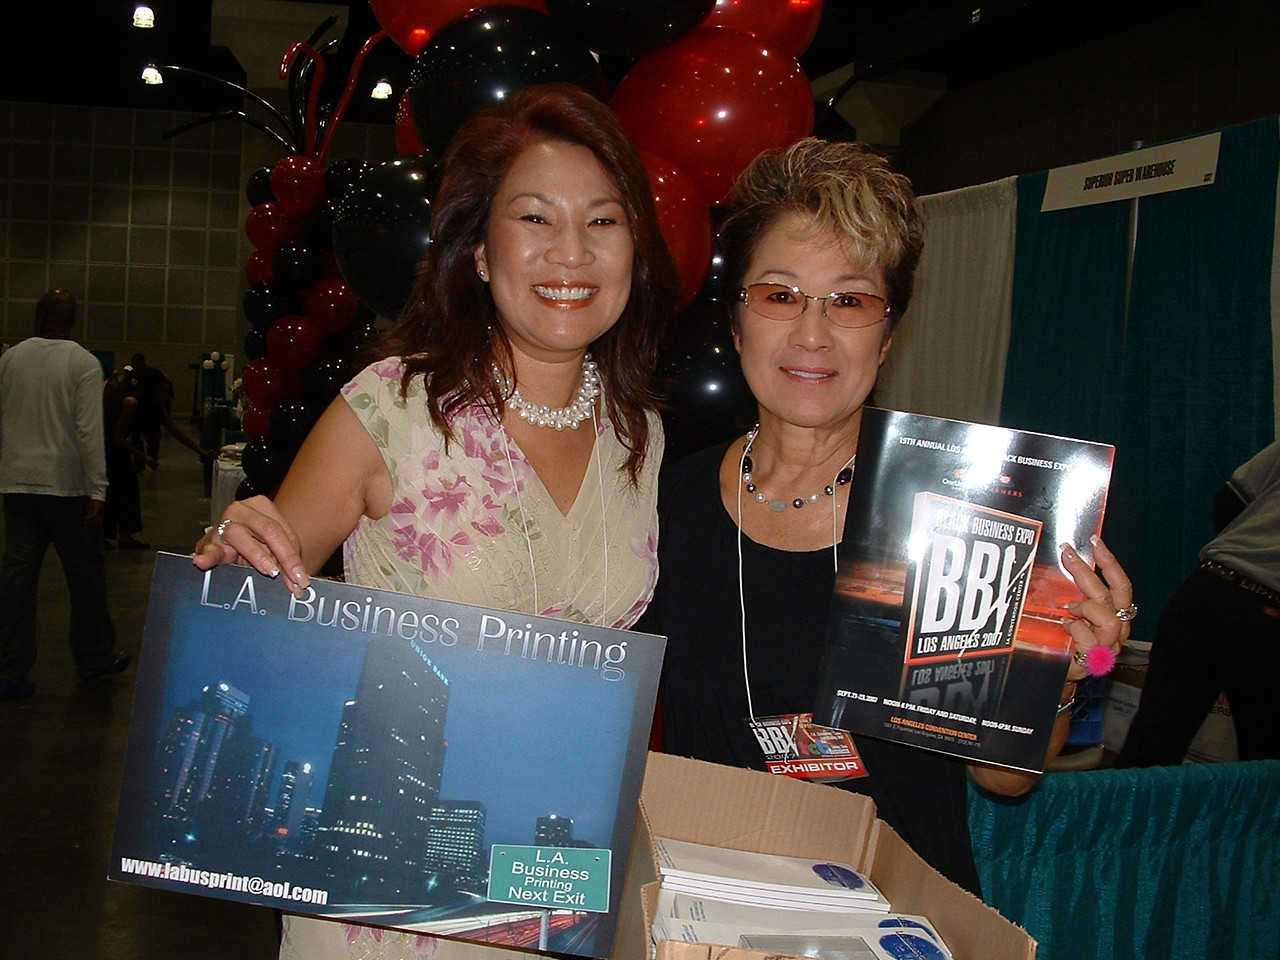 L.A. Business Printing printed the Expo Program Guide...Here, Office Manager Charlene and her sister pose with Eric Johnson's (owner) handiwork.